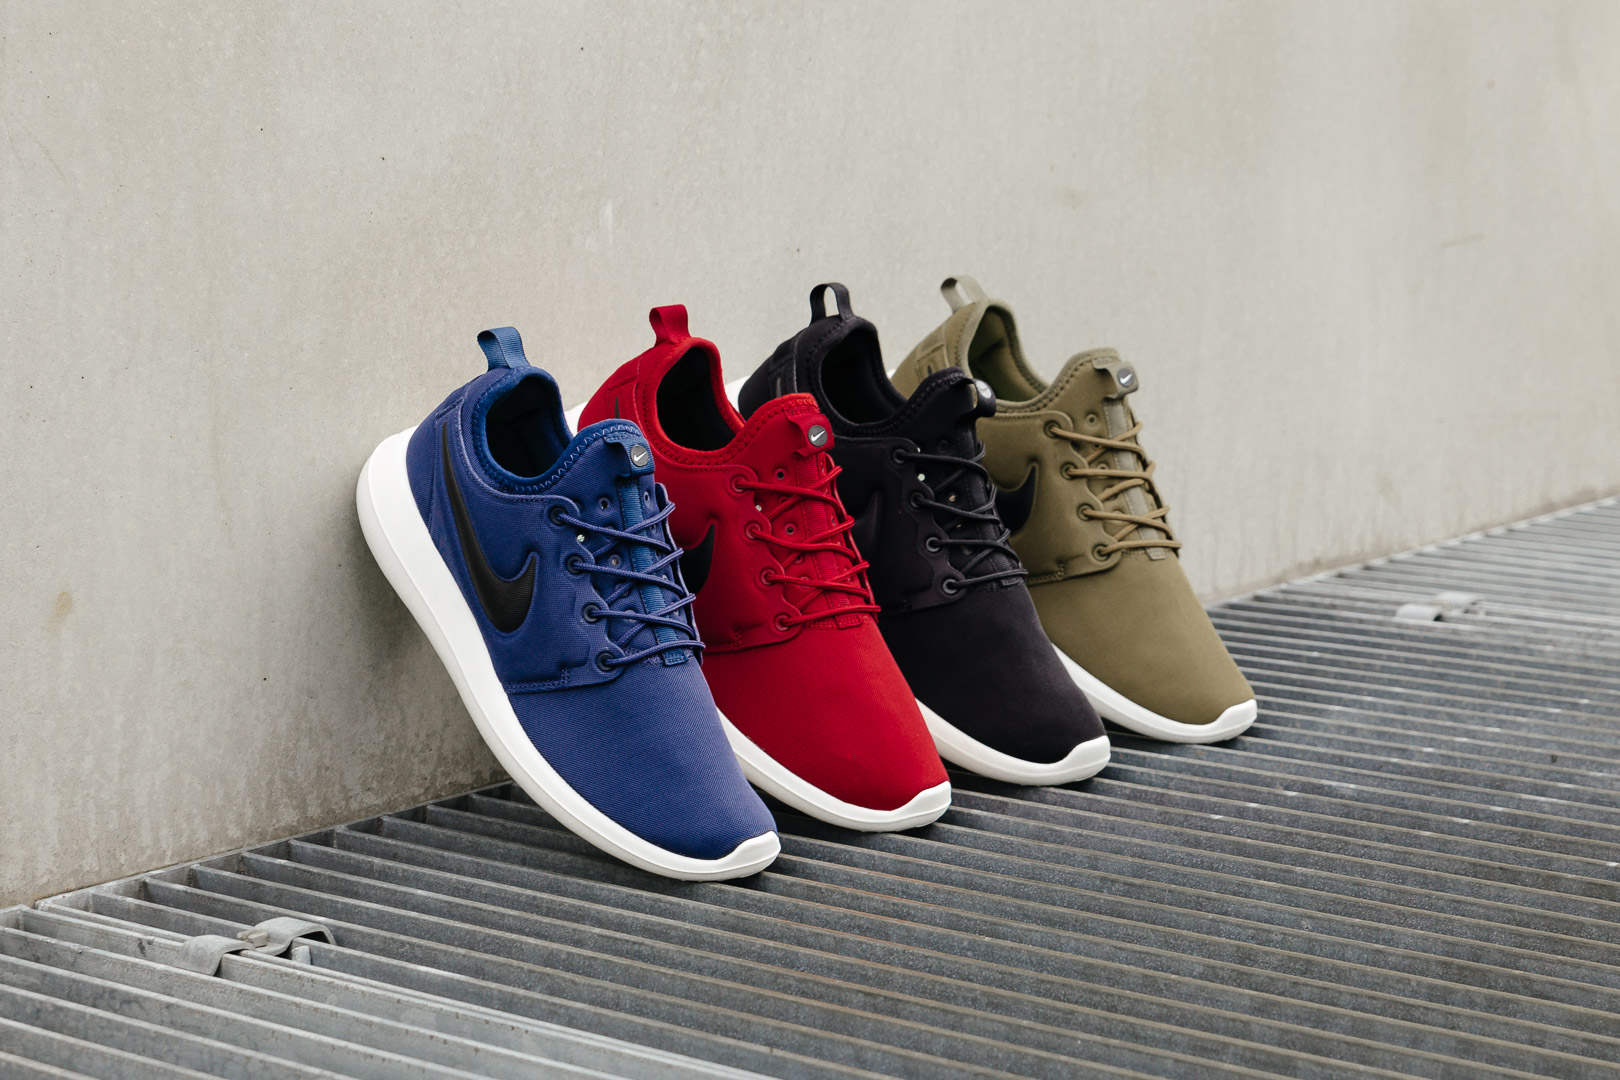 2335-INS-SoleHeaven-ROSHE-TWO-PACK.jpg